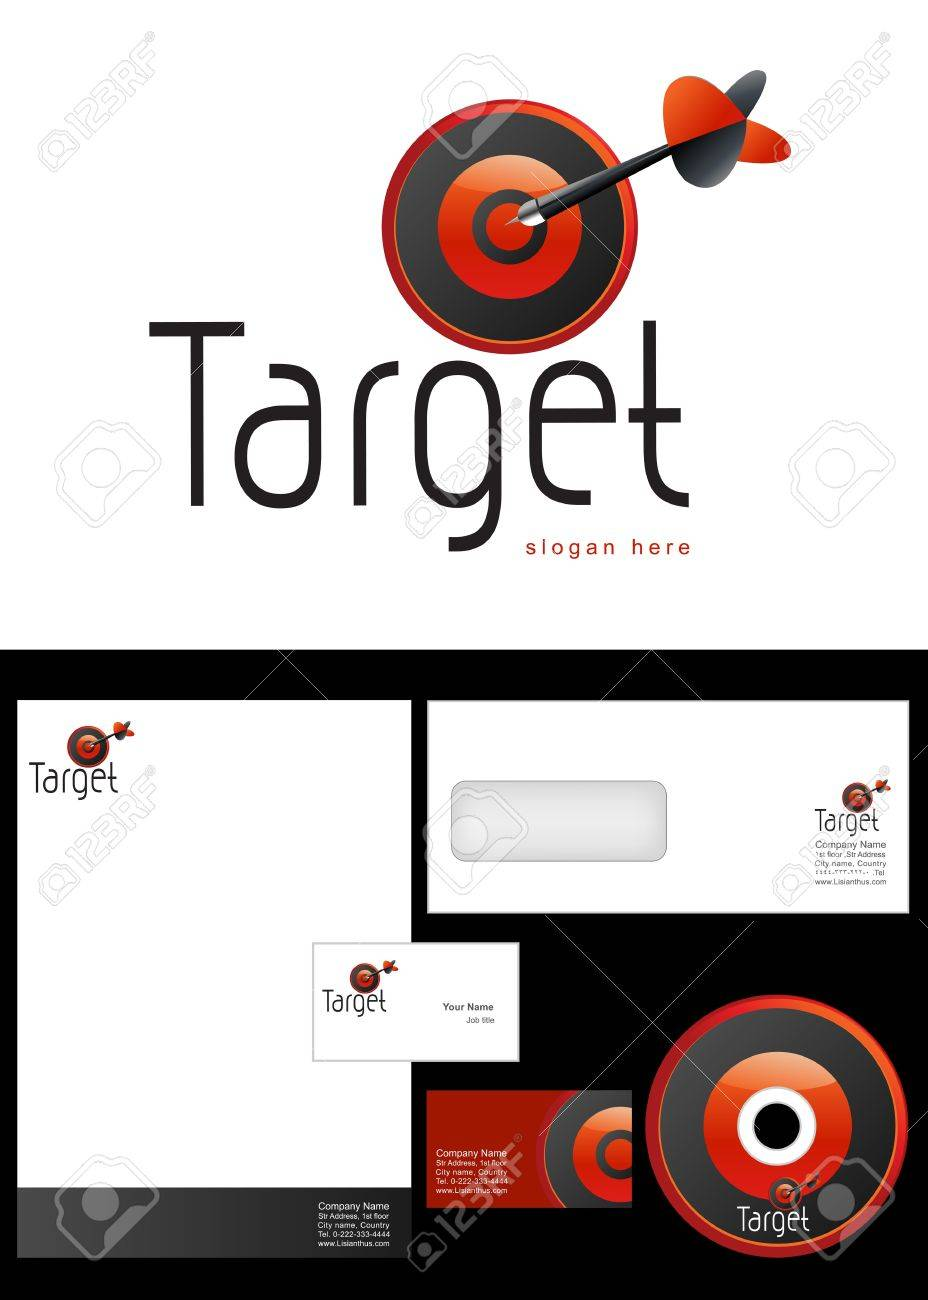 Target Logo Design And Corporate Identity Package Including Logo ...